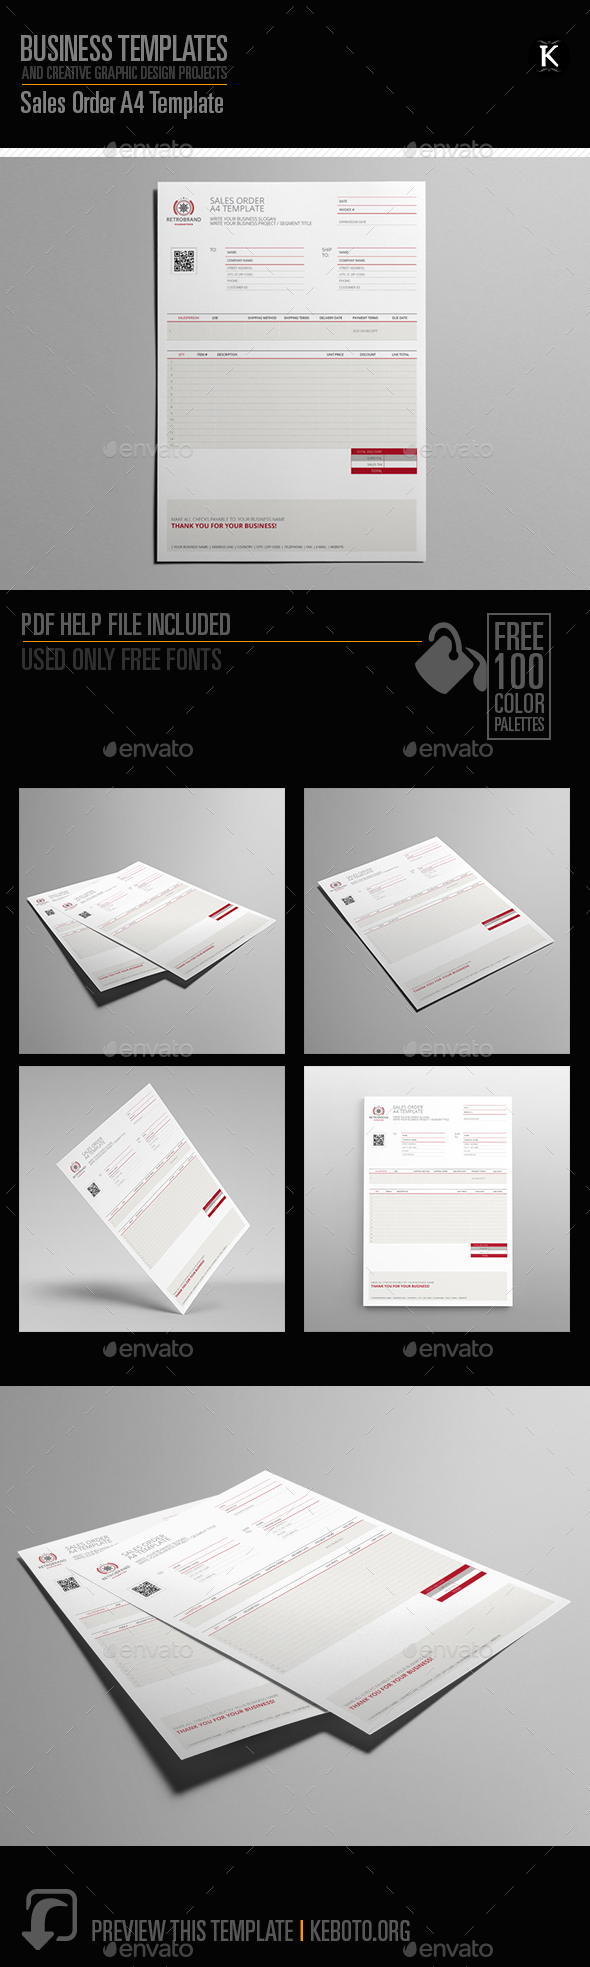 Sales order a4 template by keboto graphicriver sales order a4 template miscellaneous print templates wajeb Image collections